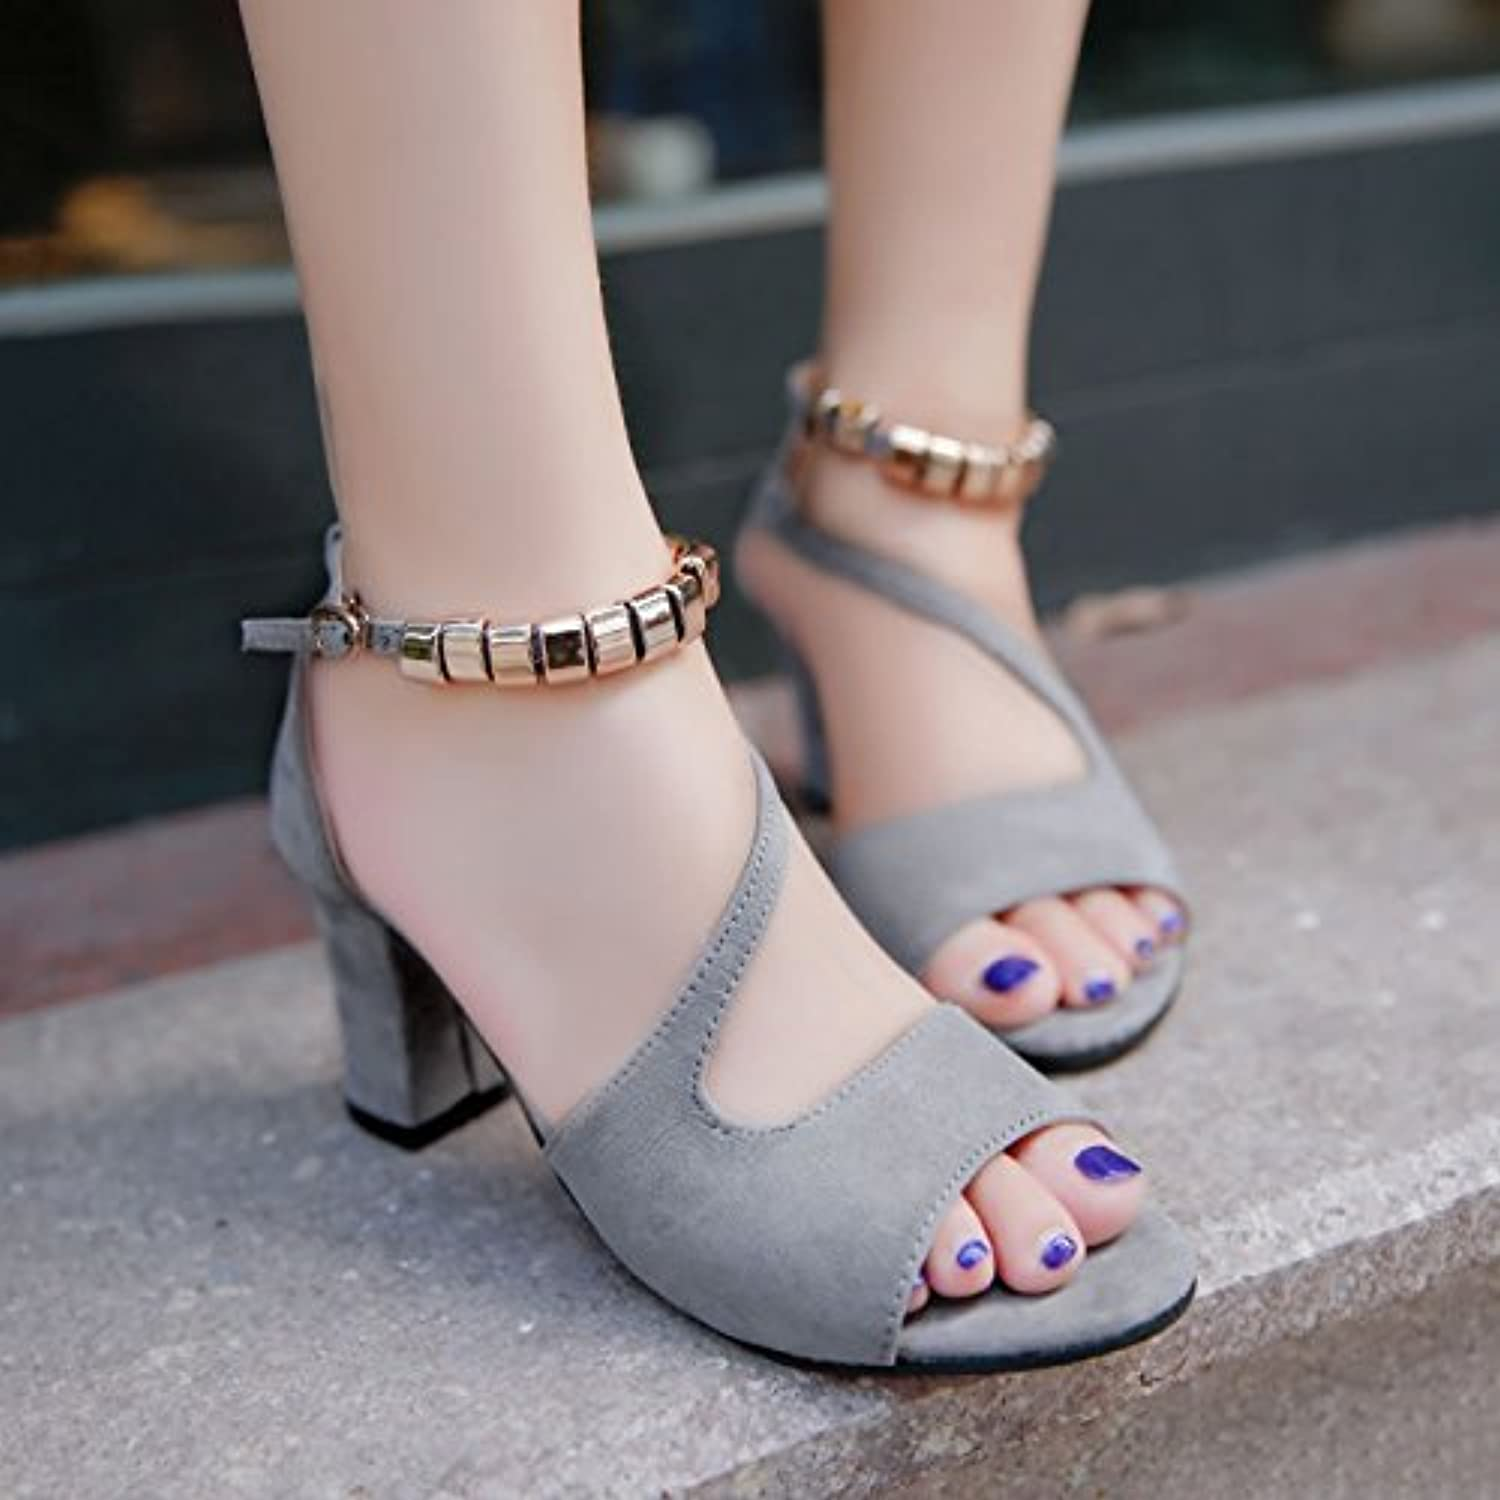 52ba2b86c67a SHOESHAOGE SHOESHAOGE SHOESHAOGE Slotted Strap Sandals Female Rough With  Students Dew-Toe High-Heeled Roman Women Shoes B07BGY3JLT Parent fe63a0